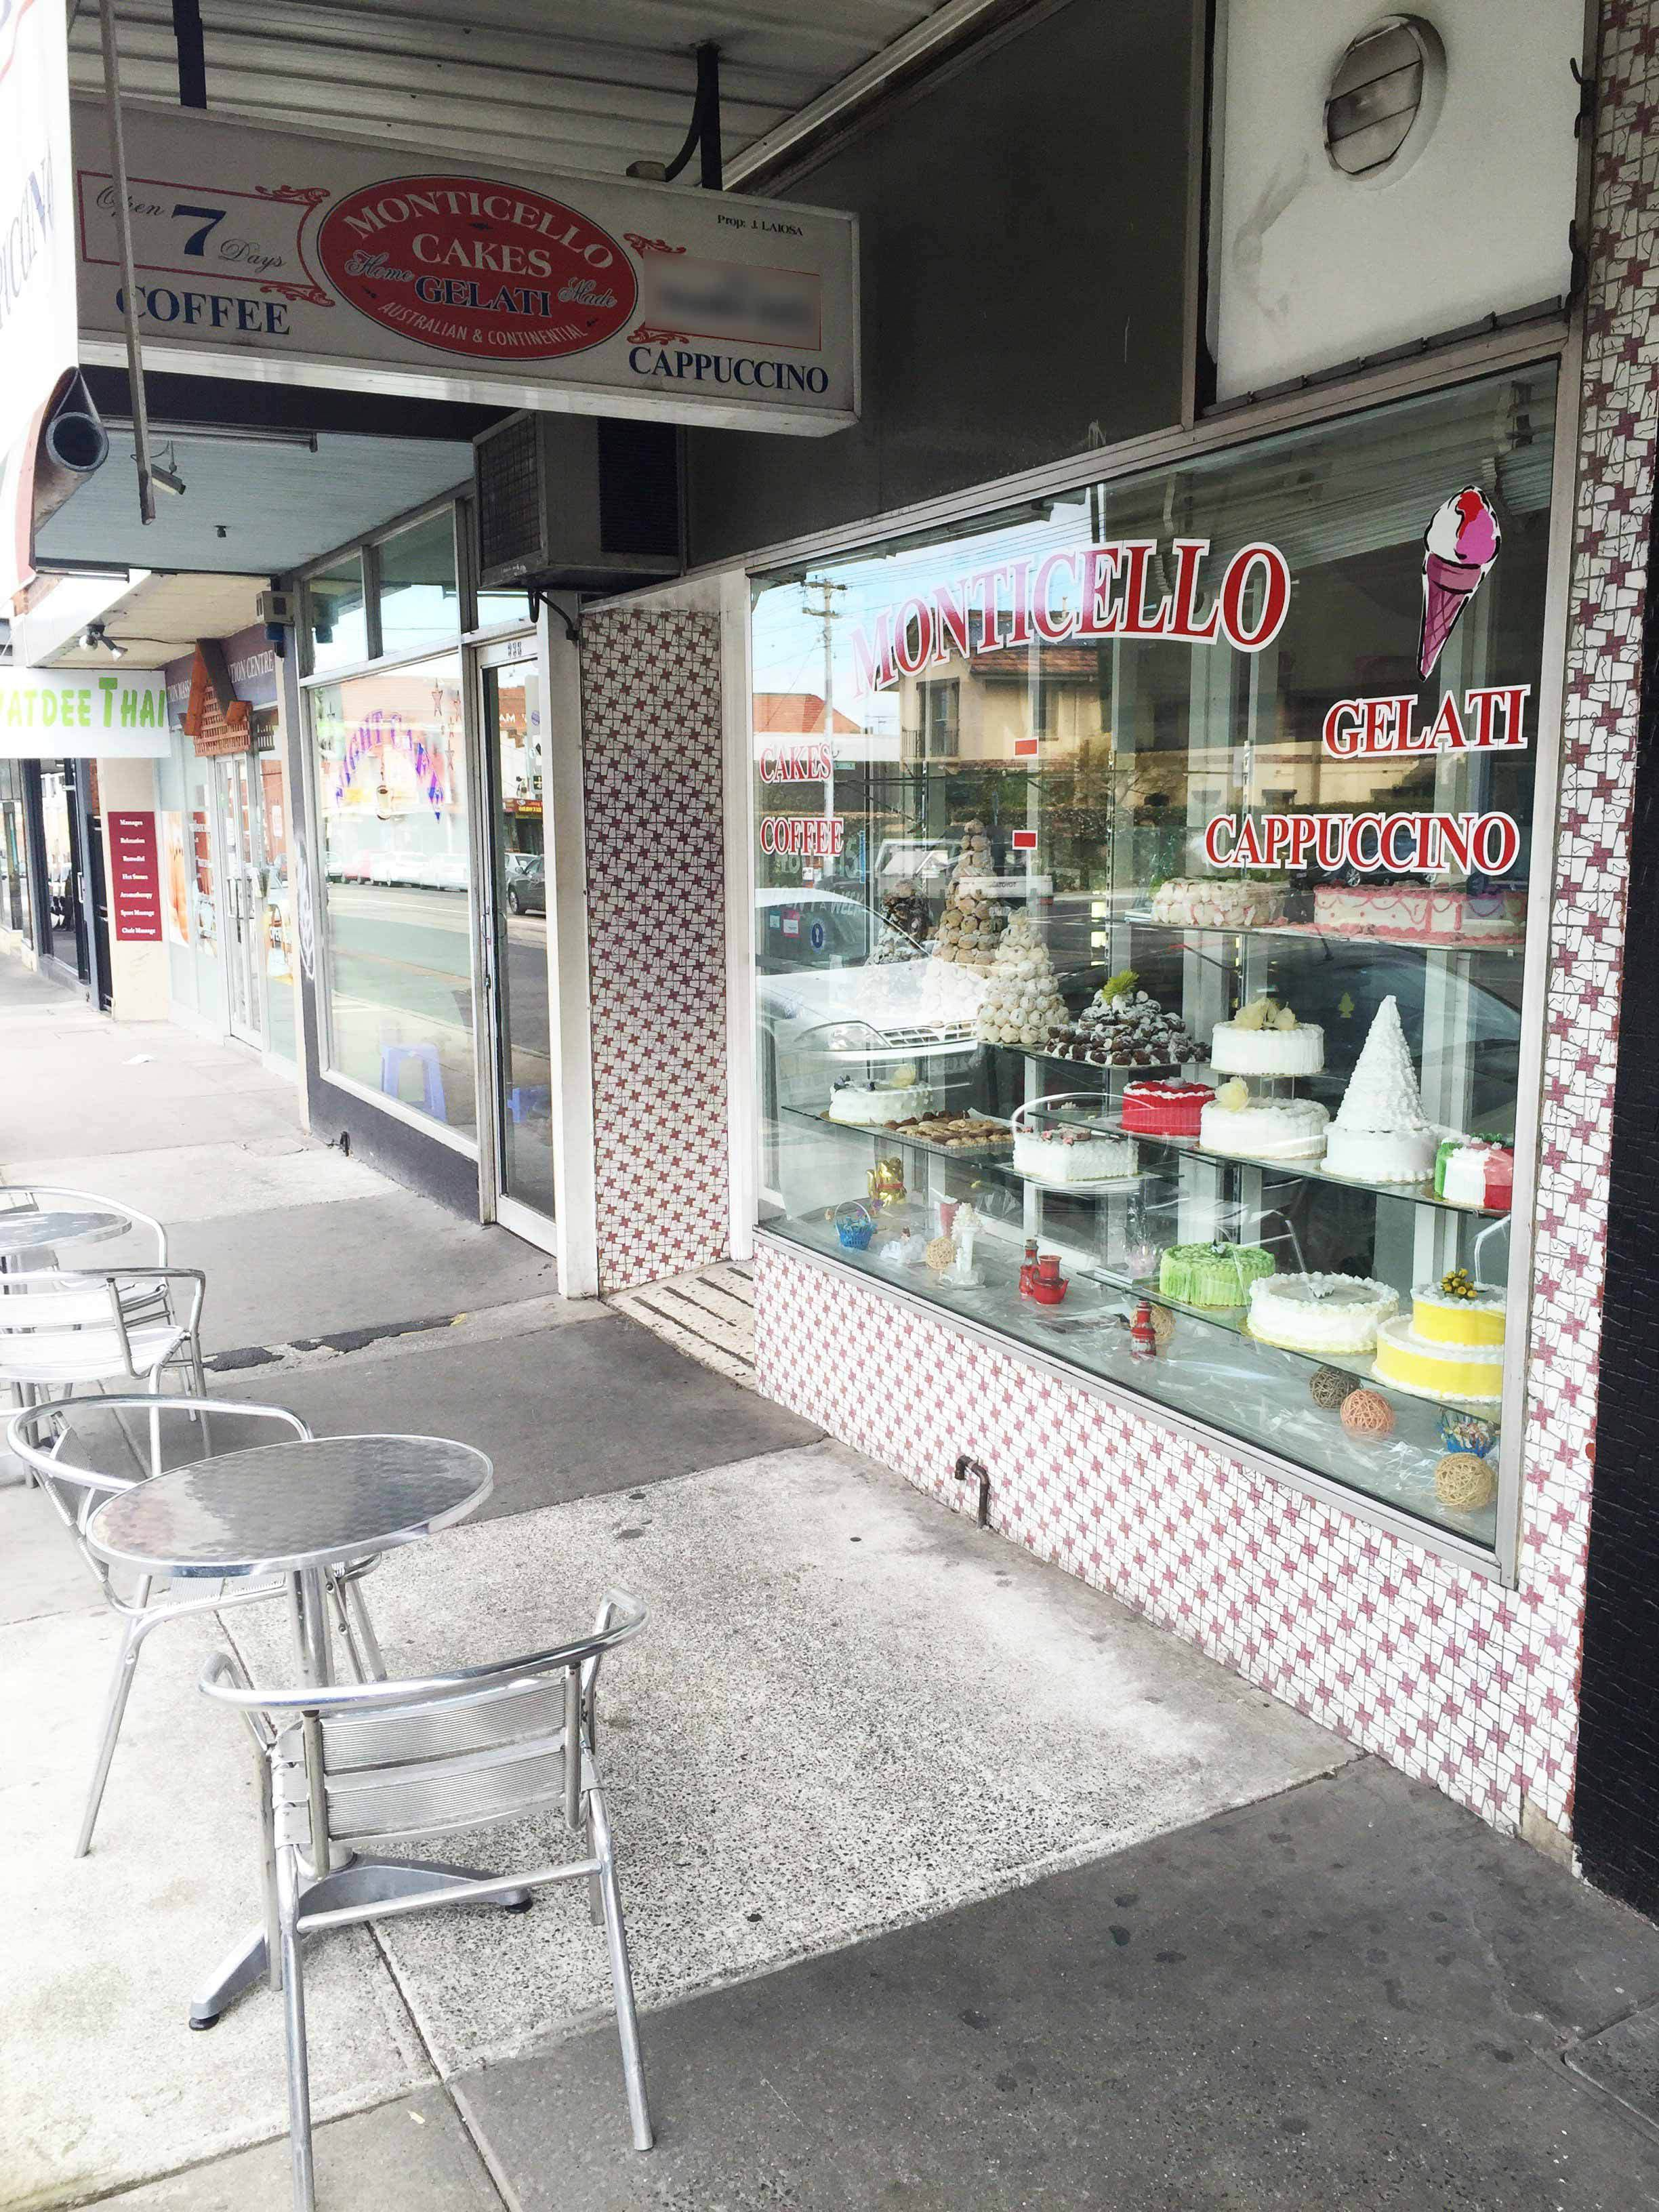 Monticello Cakes  Continental Gelati - Accommodation Fremantle